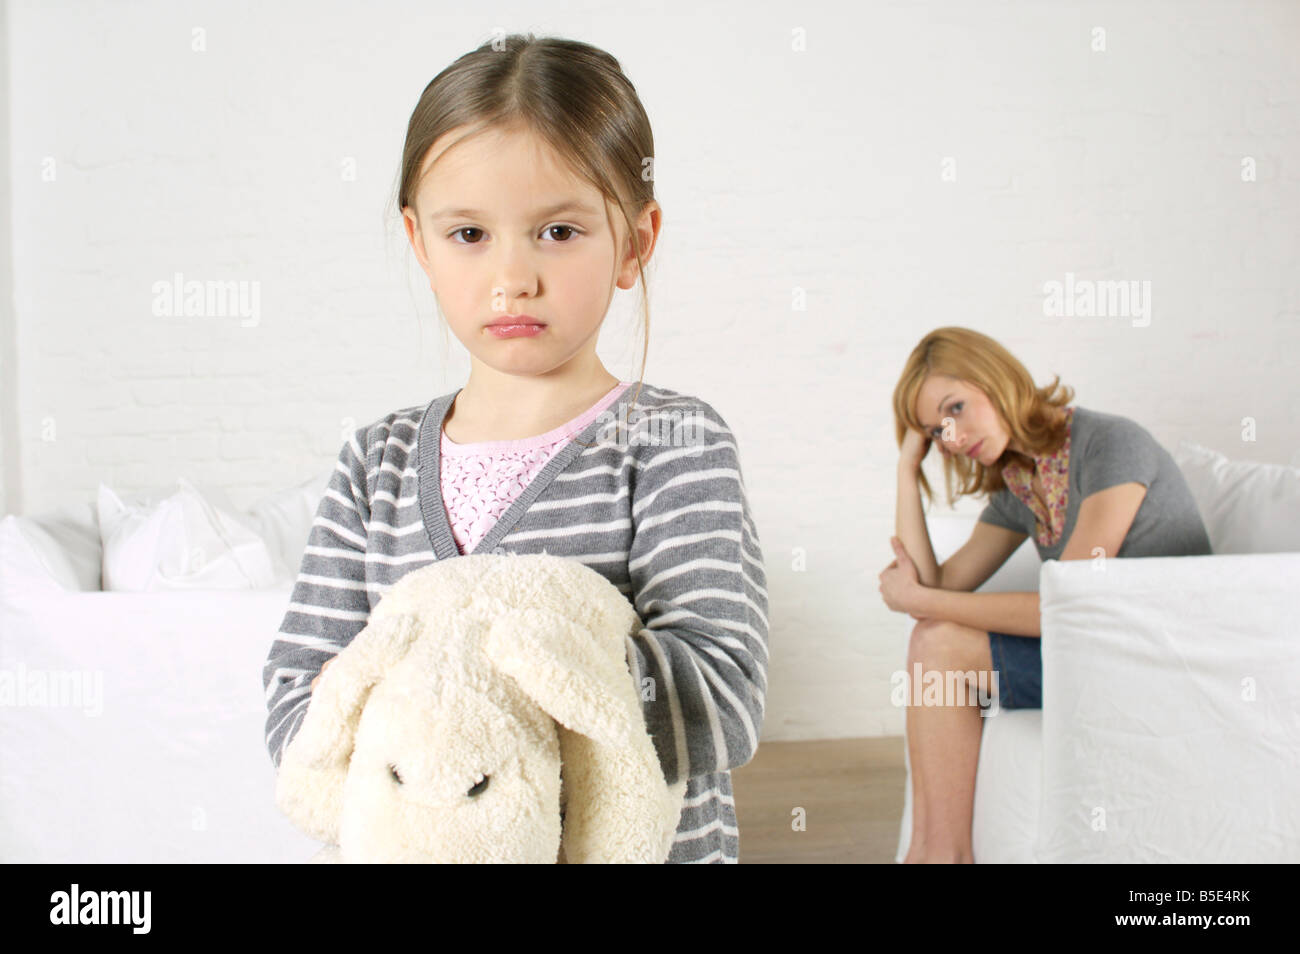 Cheerless girl looking at camera, mother sitting in background Stock Photo